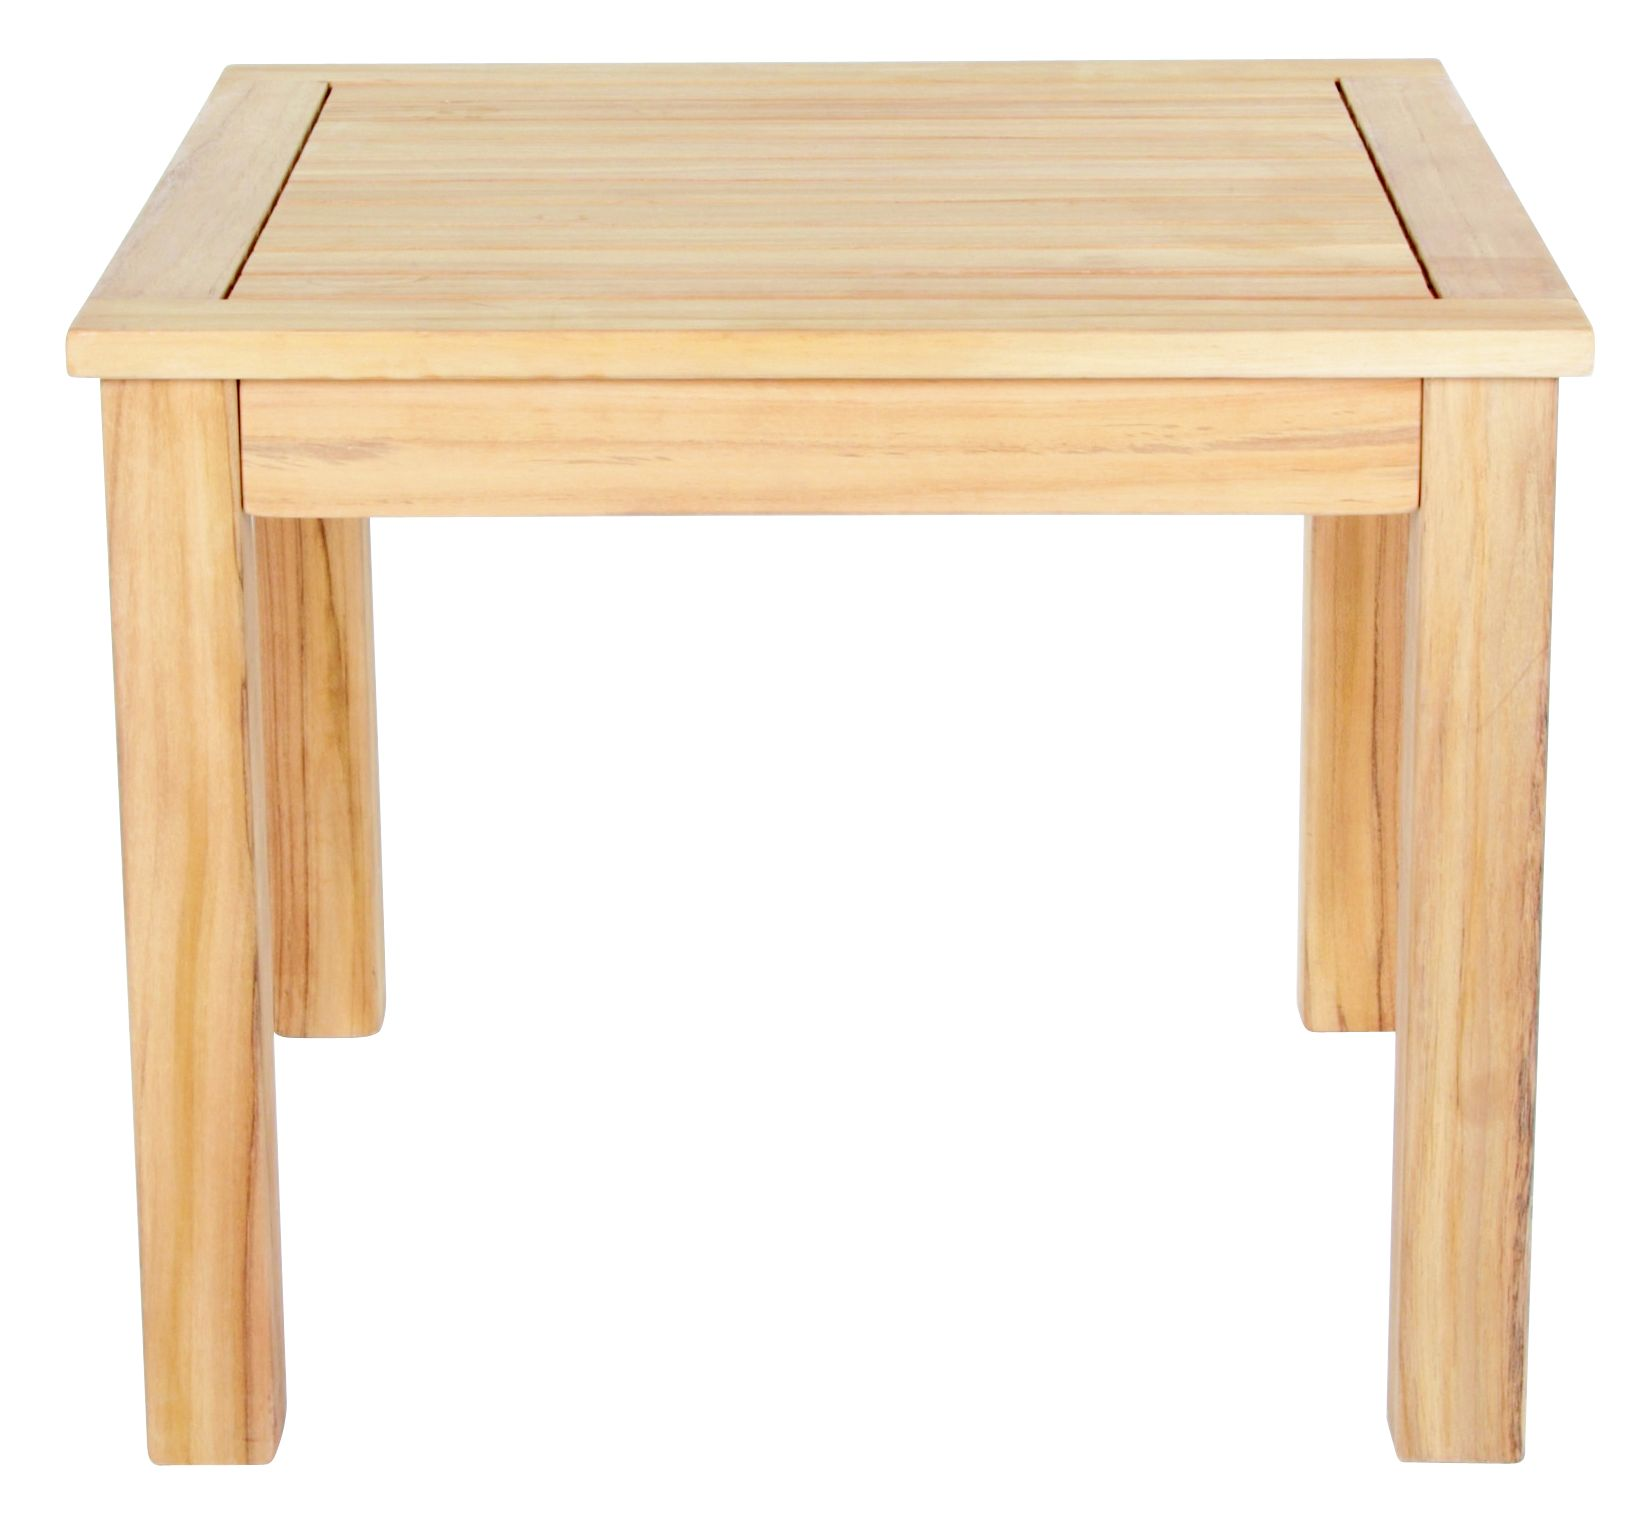 Roscana Teak Wooden Side Table Departments